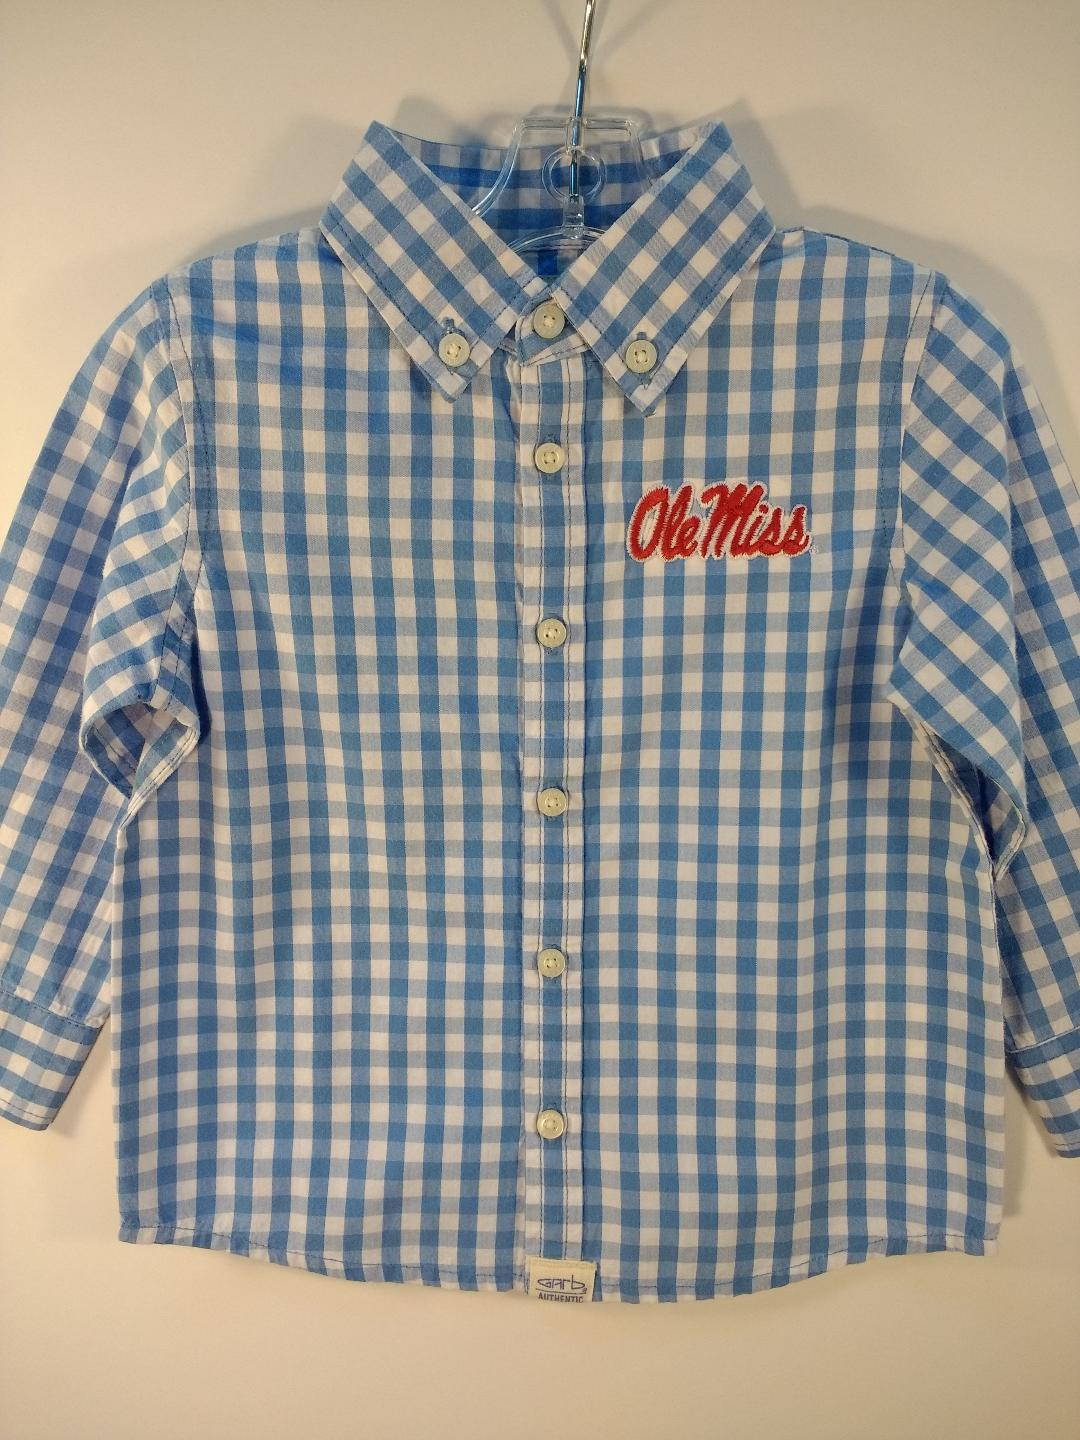 Garb Logan Infant Carolina Blue Gingham Shirt